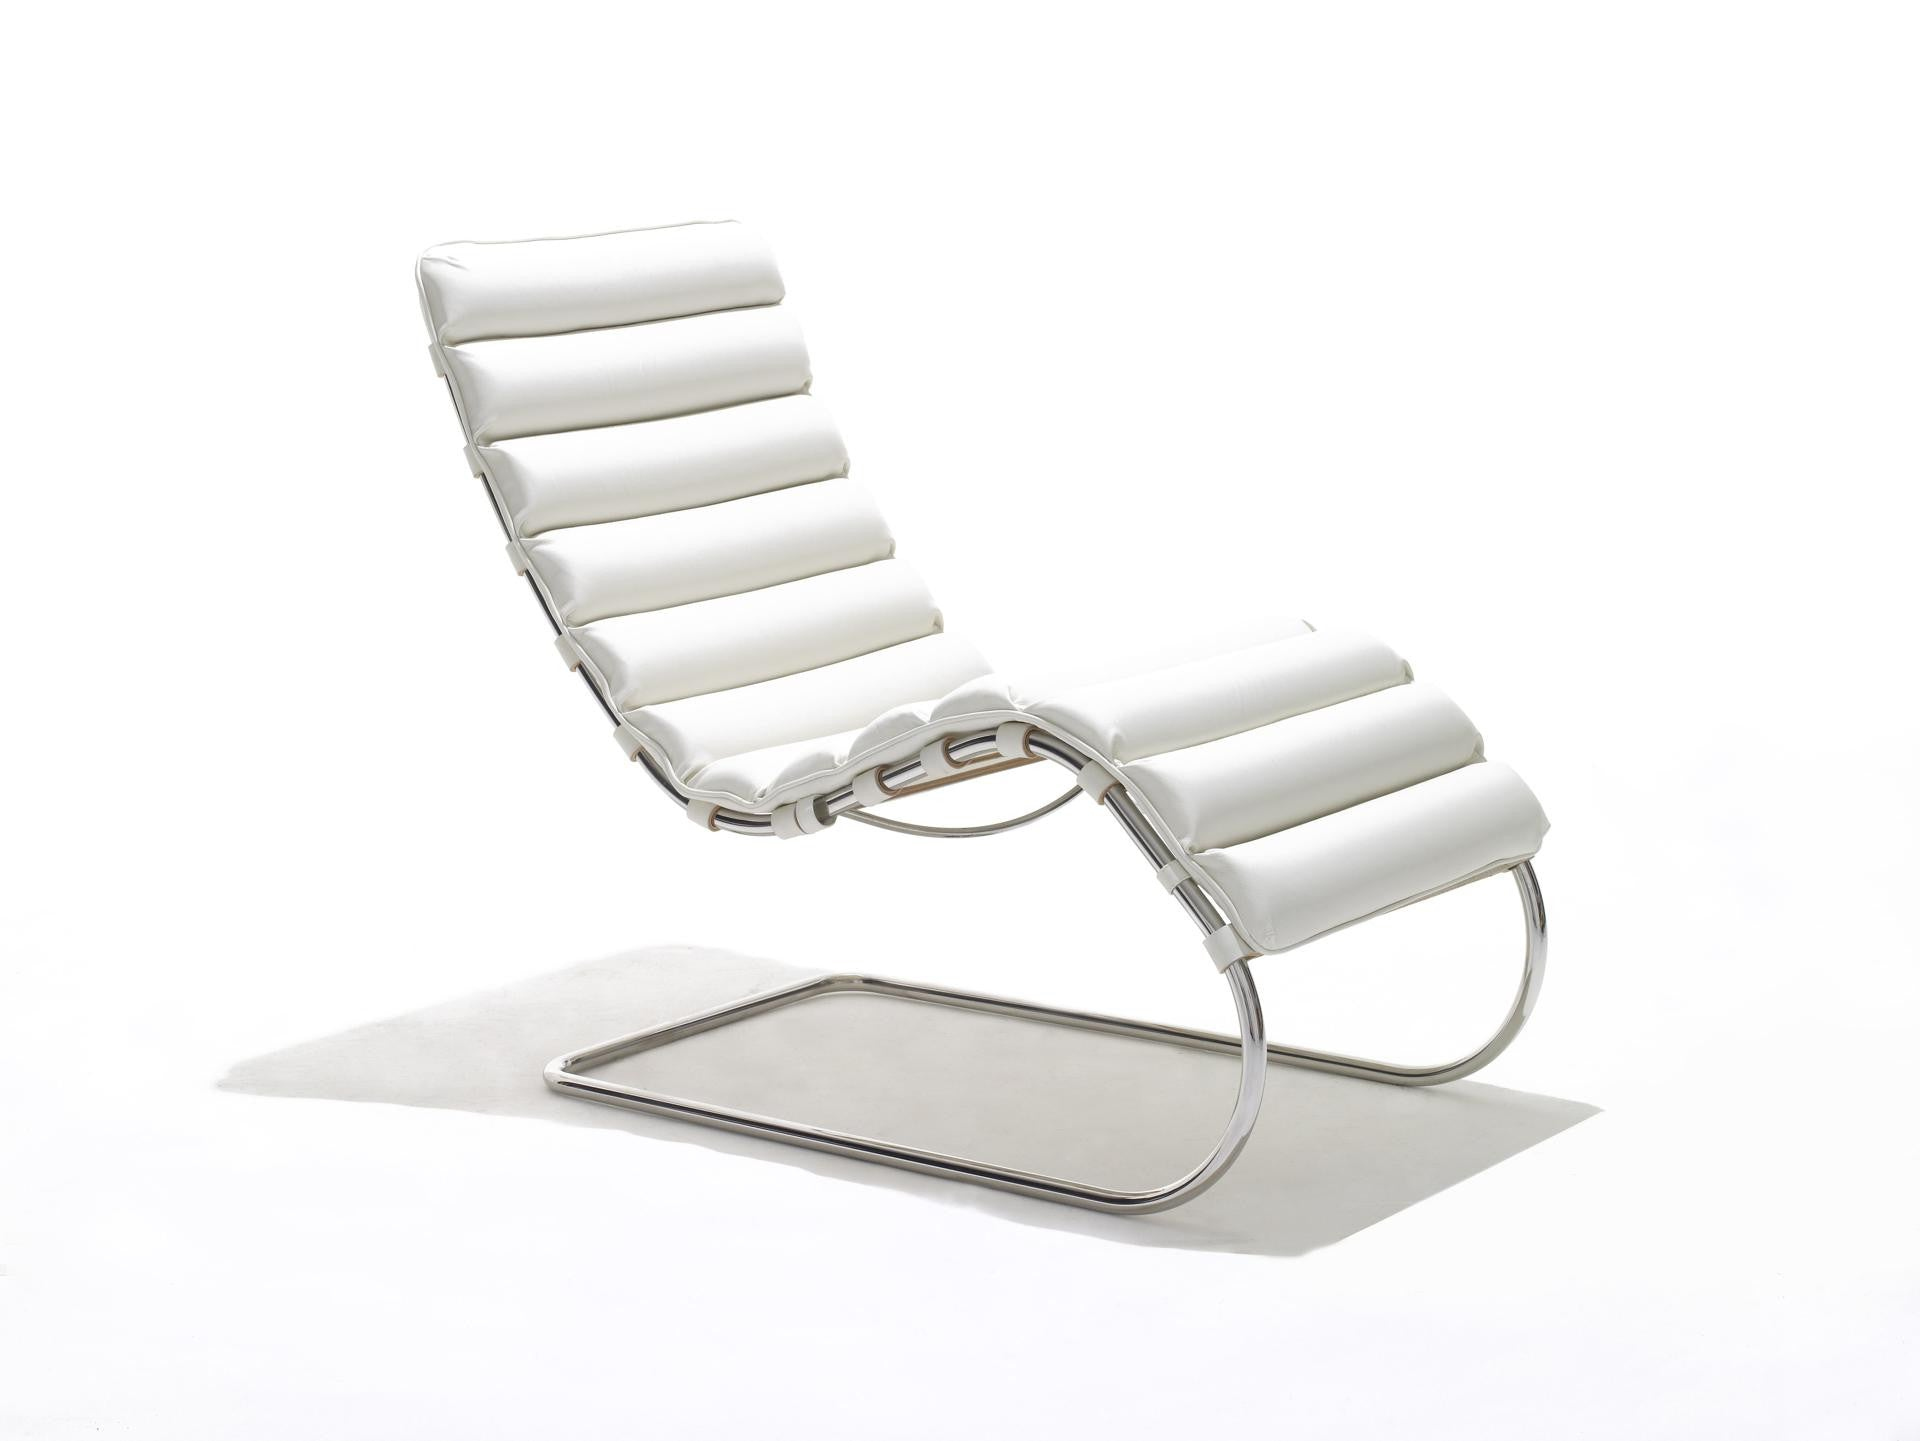 MR Chaise Longue - Couch Potato Company on chaise furniture, ball chair, adirondack chair, sofa bed, chaise recliner chair, barcelona chair, windsor chair, eames lounge chair, wing chair, fainting couch, aeron chair, bubble chair, chaise sofa sleeper,